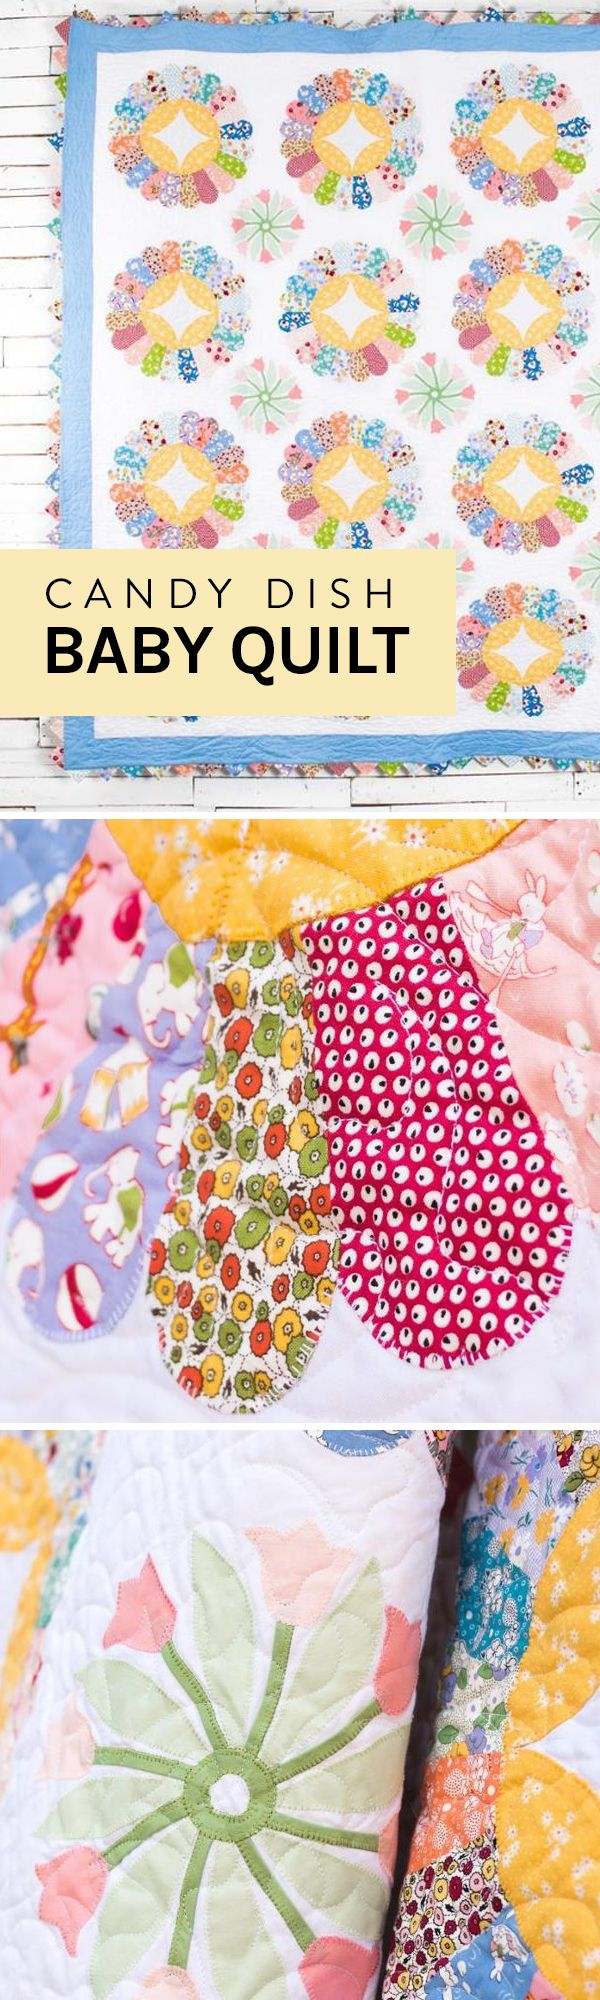 77 best childrens quilts and blankets images on pinterest the pink blue and yellow colors in the candy dish quilt kit make it bankloansurffo Choice Image